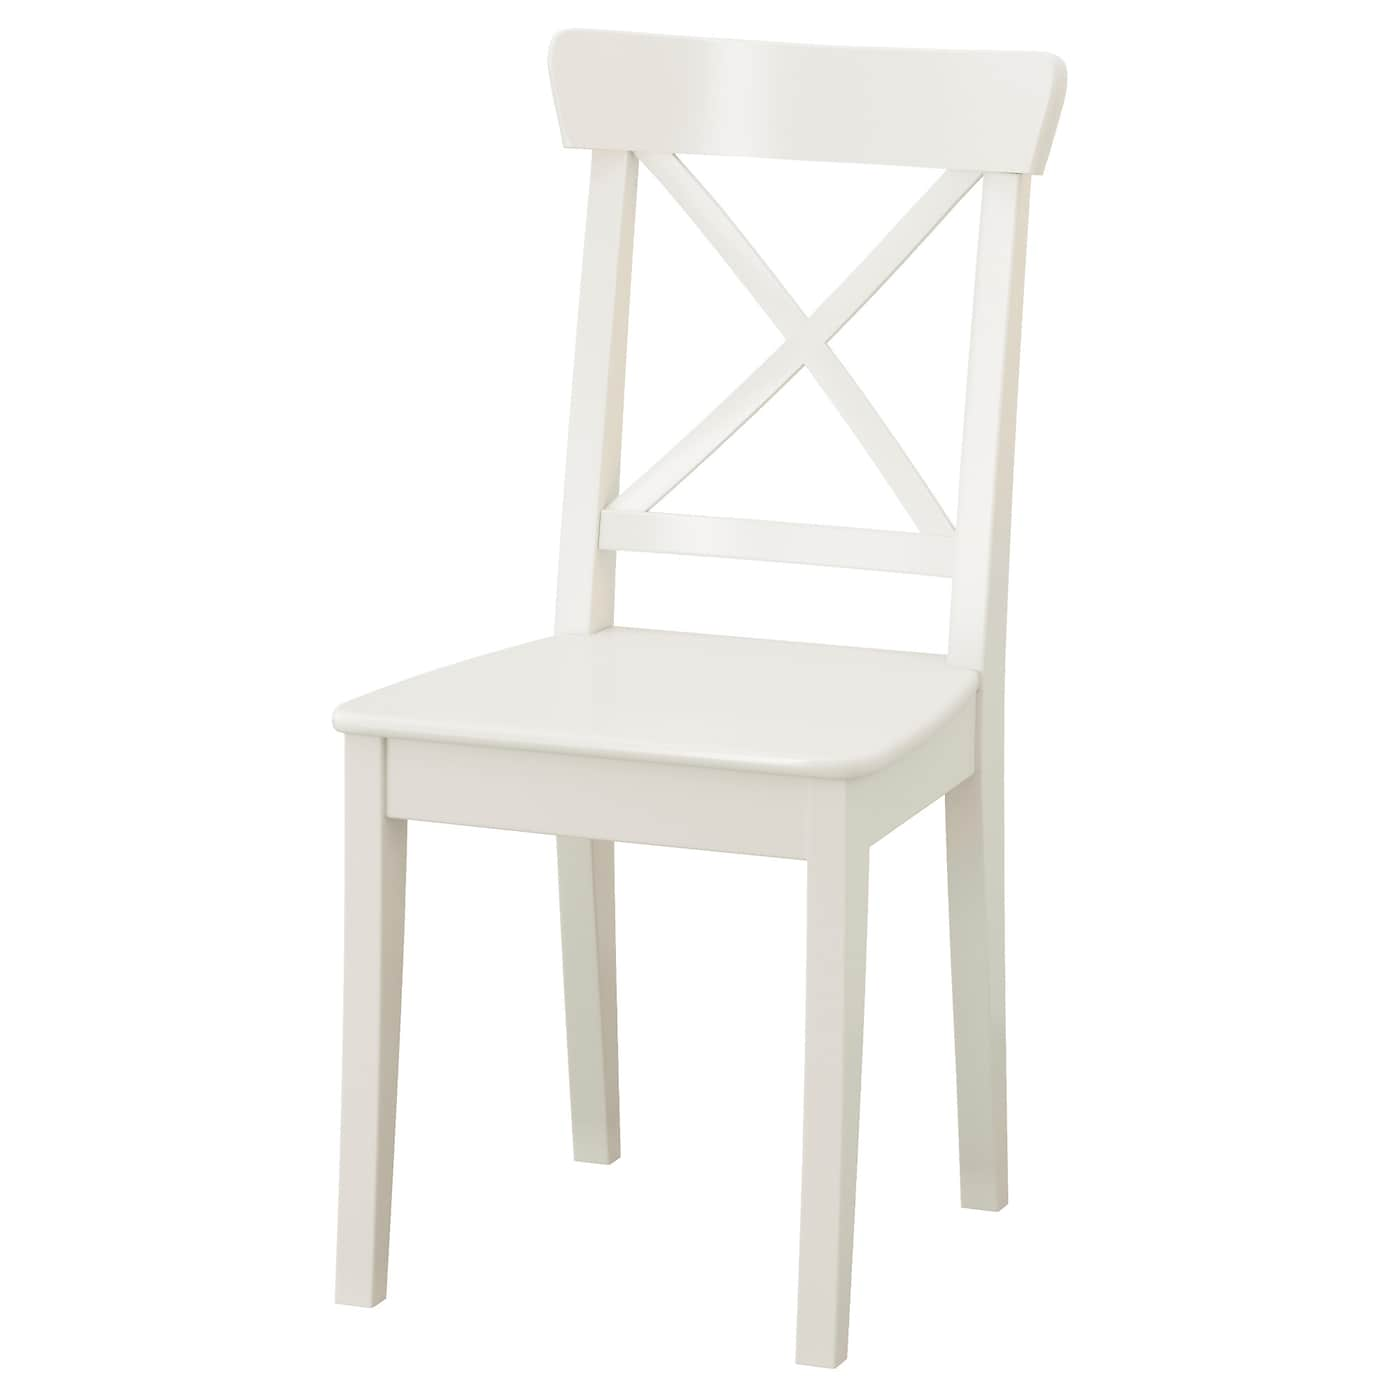 White And Natural Wood Kitchen Chairs